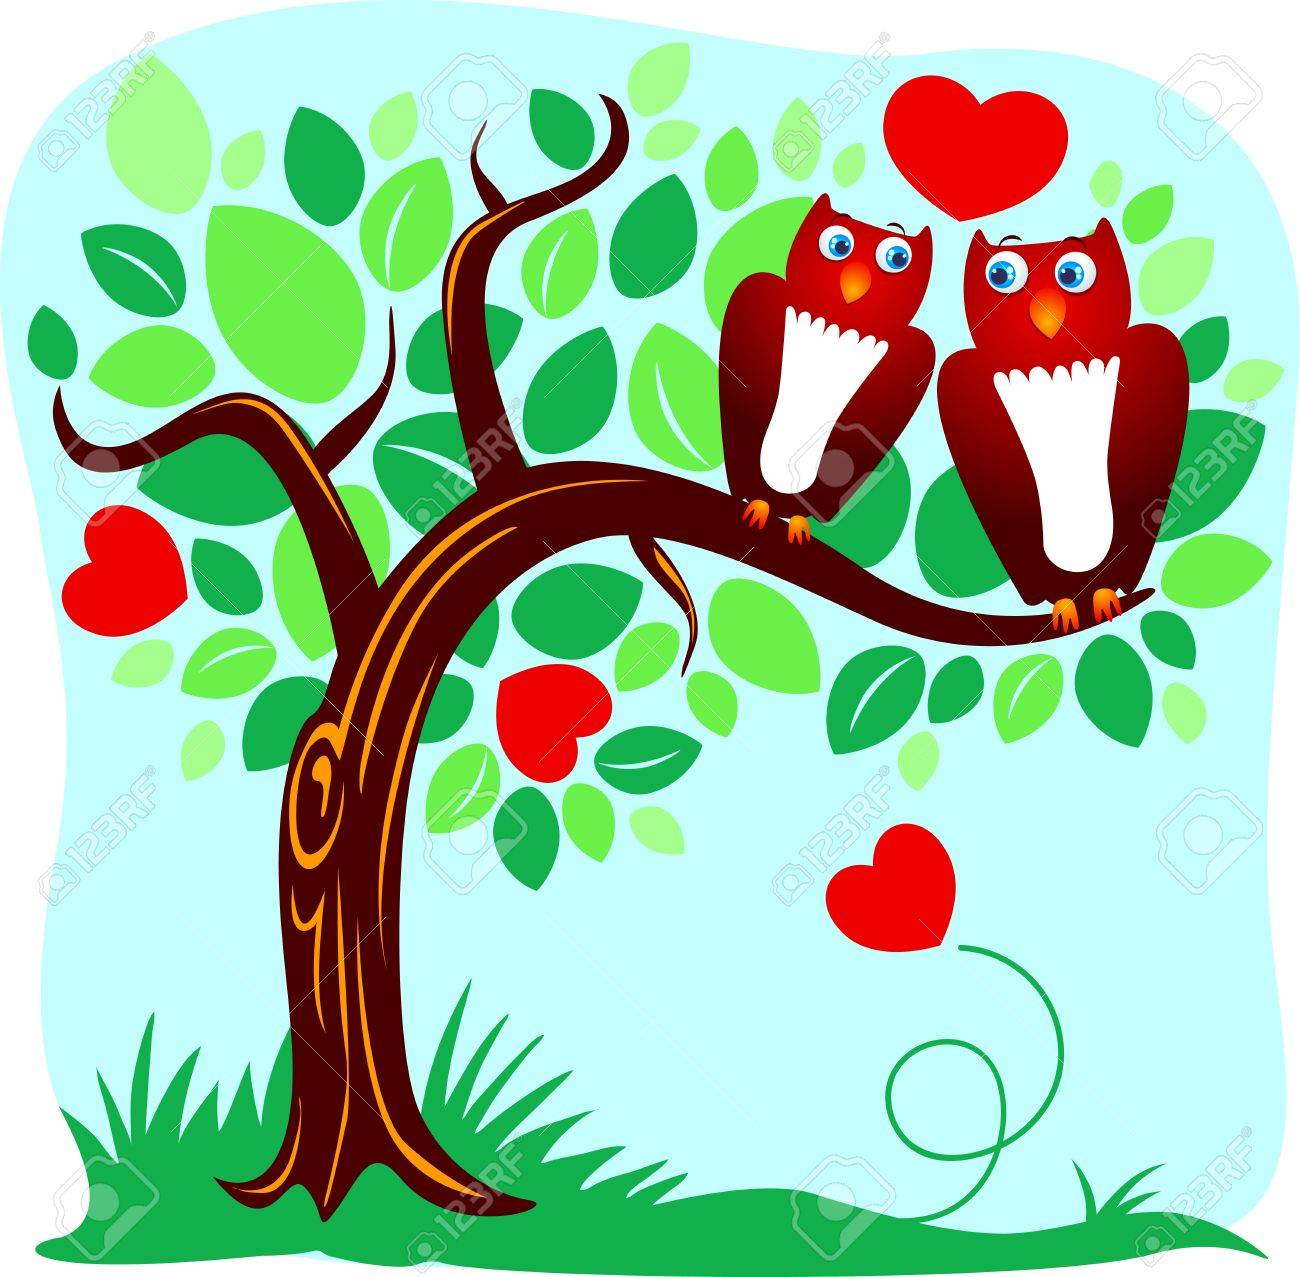 Two owls in love kissing on a branch Stock Vector - 9893111